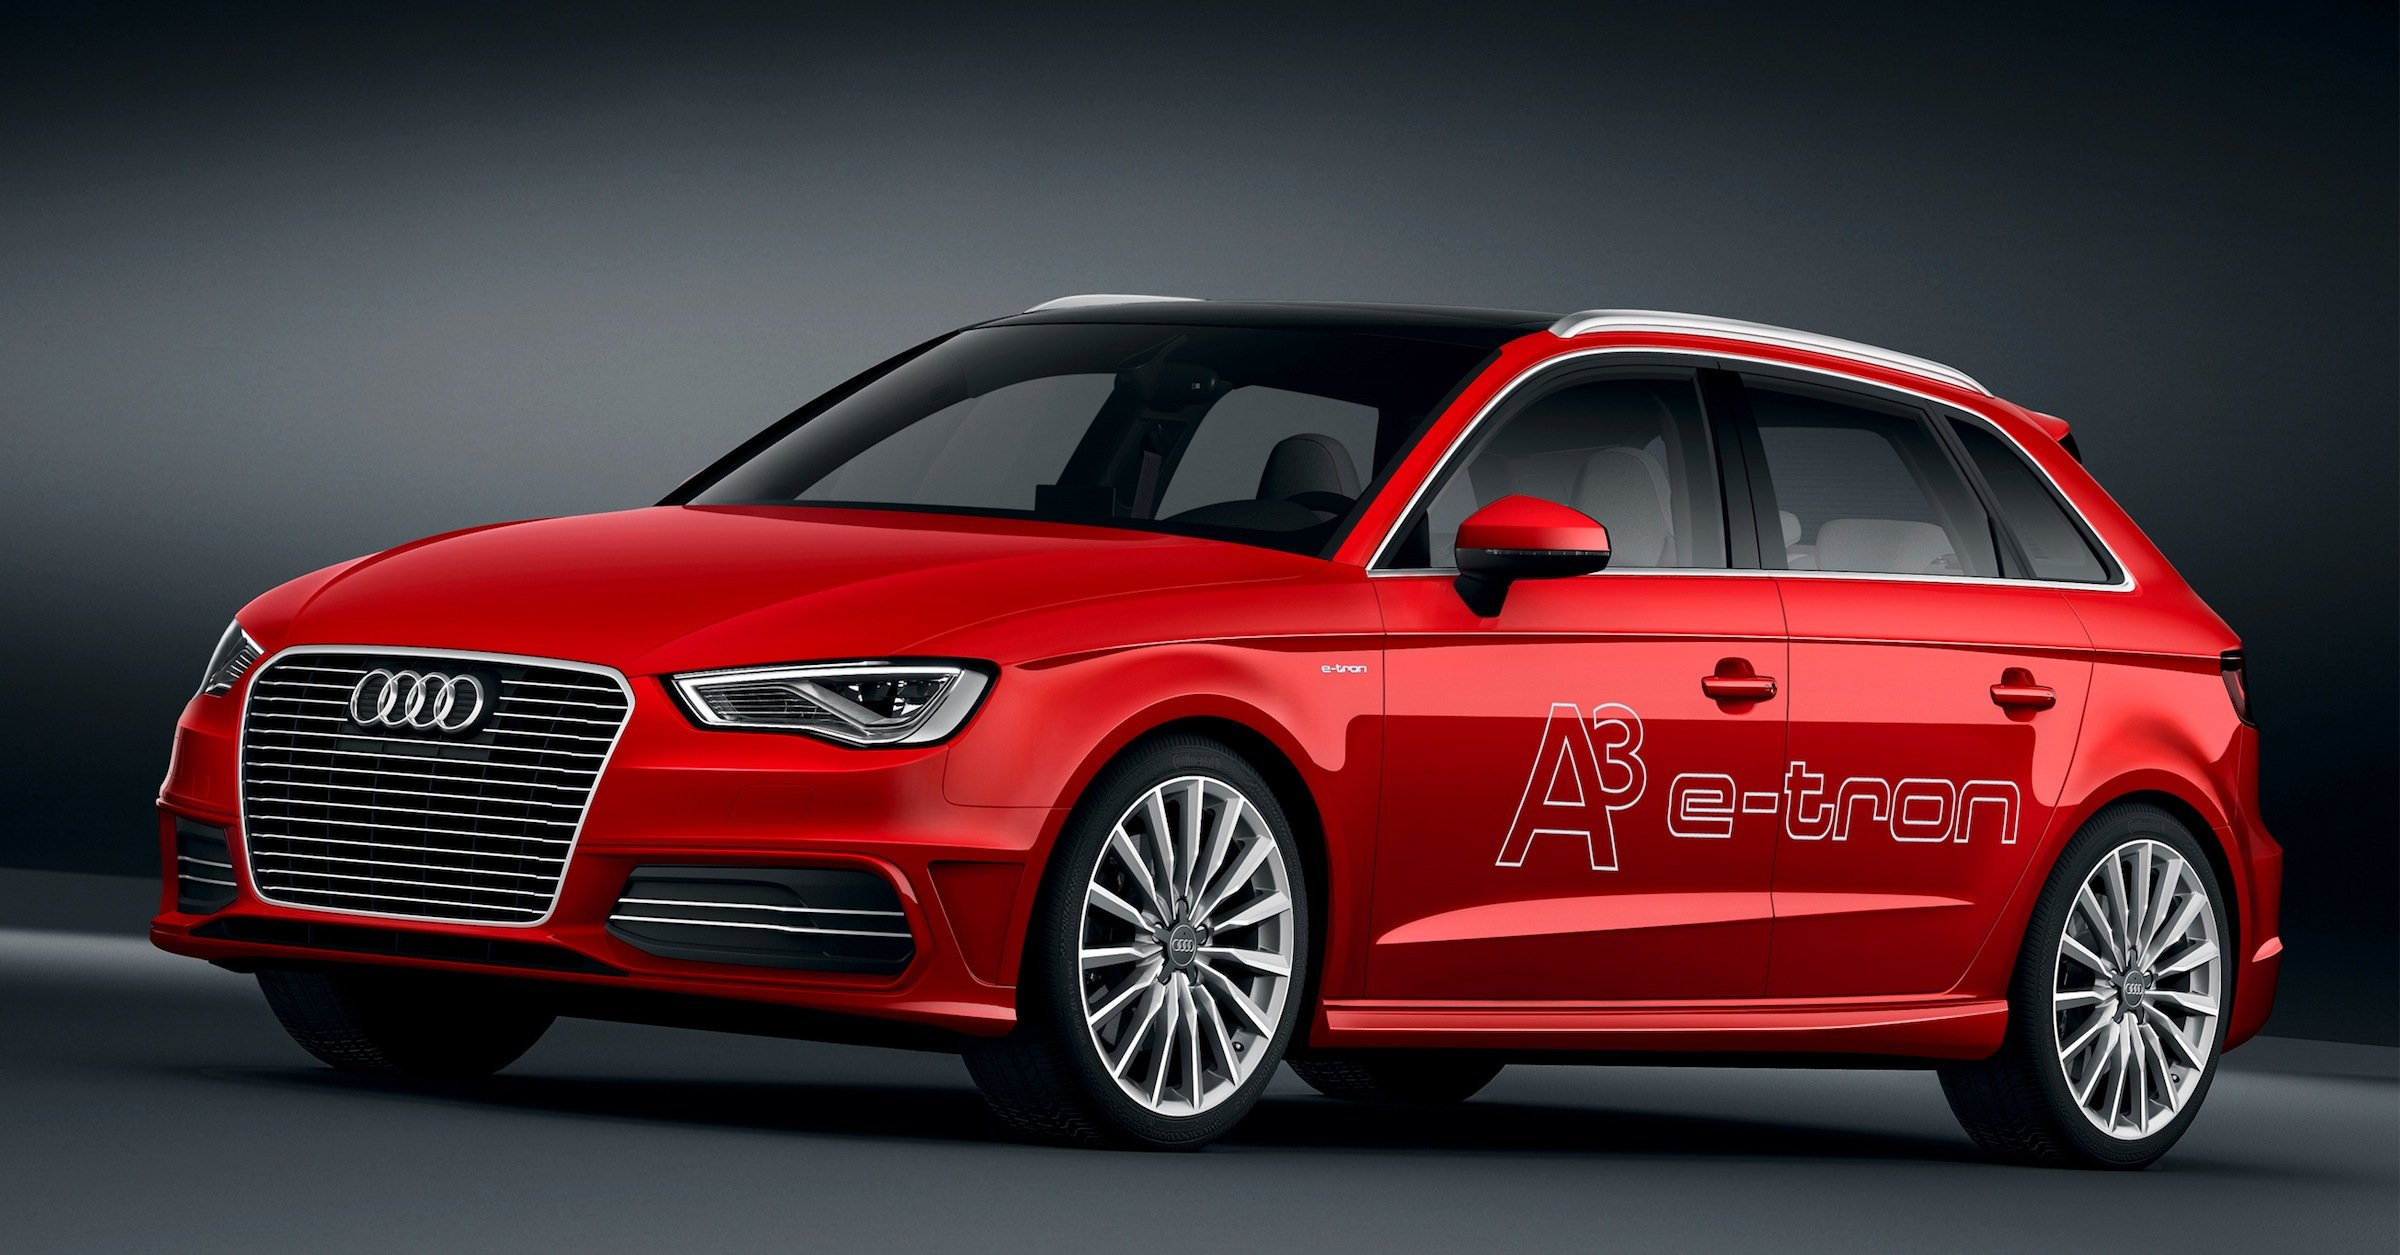 audi a3 e tron first audi plug in hybrid to arrive in australia late 2014 photos 1 of 5. Black Bedroom Furniture Sets. Home Design Ideas